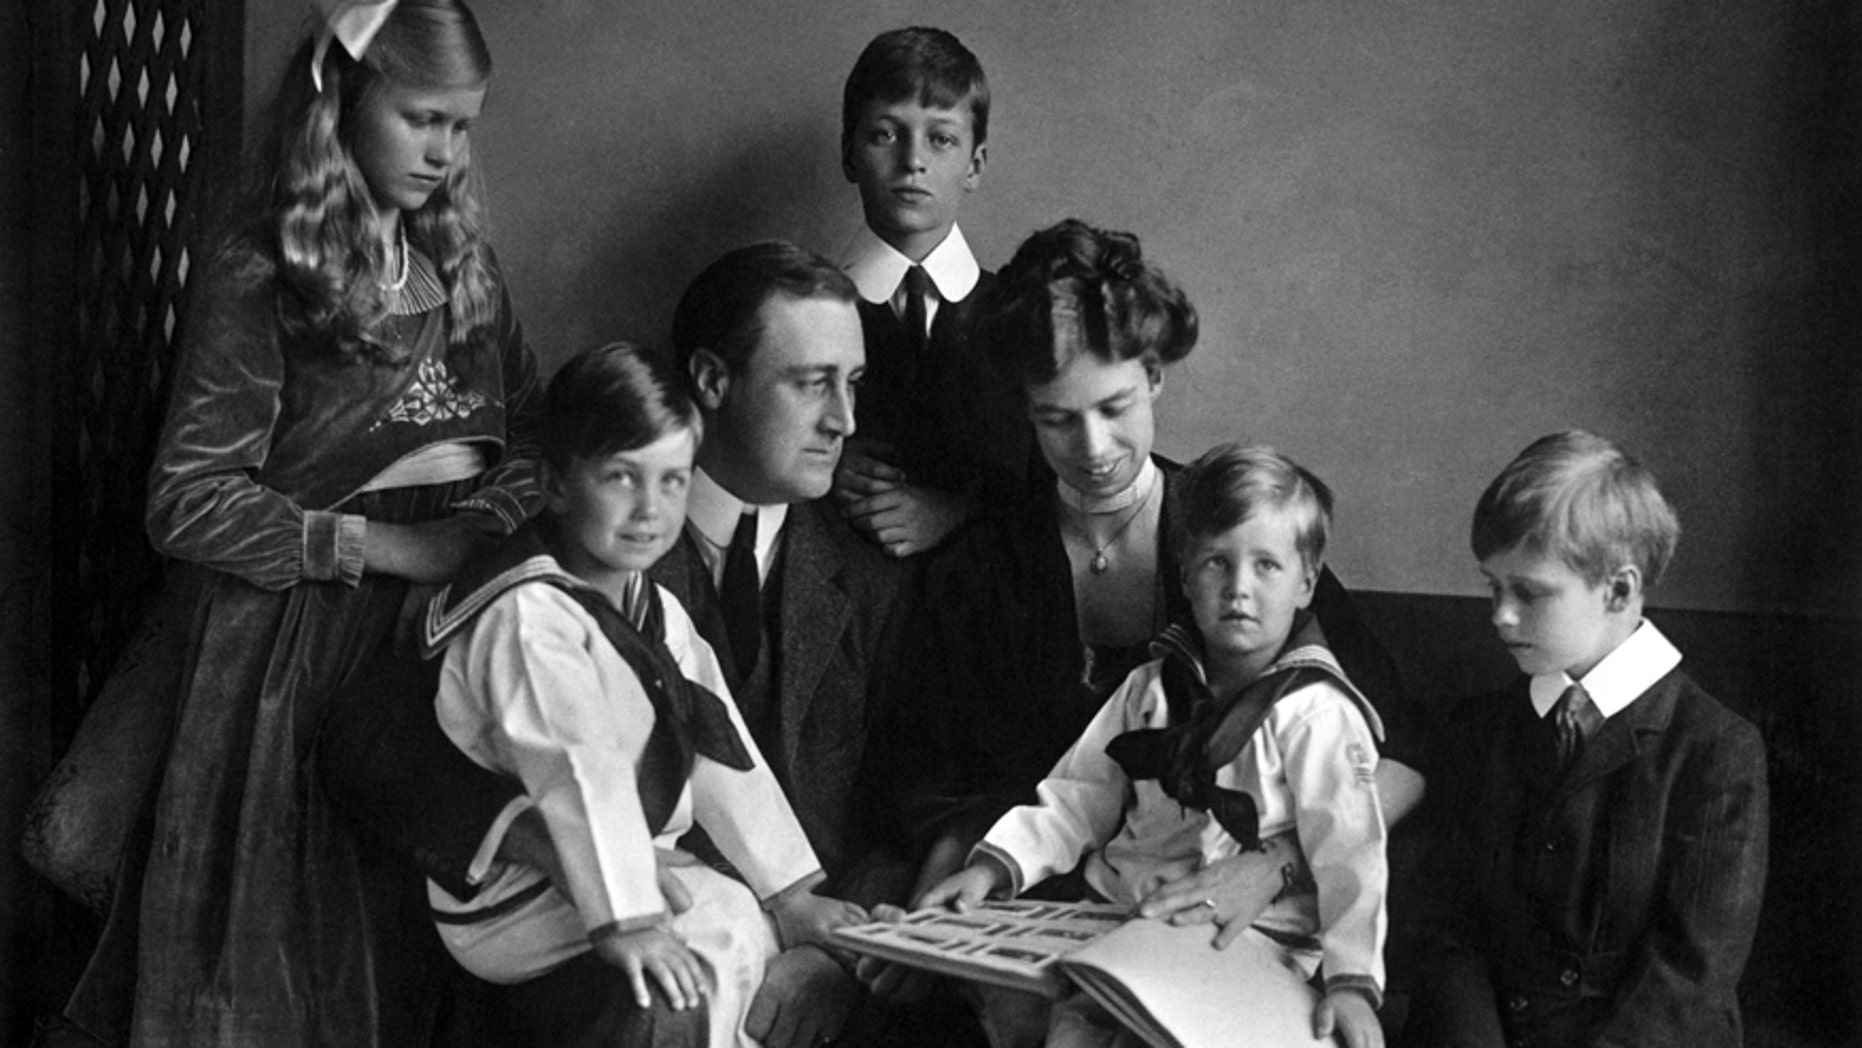 In this June 12, 1919 photo provided by PBS, Franklin and Eleanor Roosevelt pose for a portrait with their children in Washington.